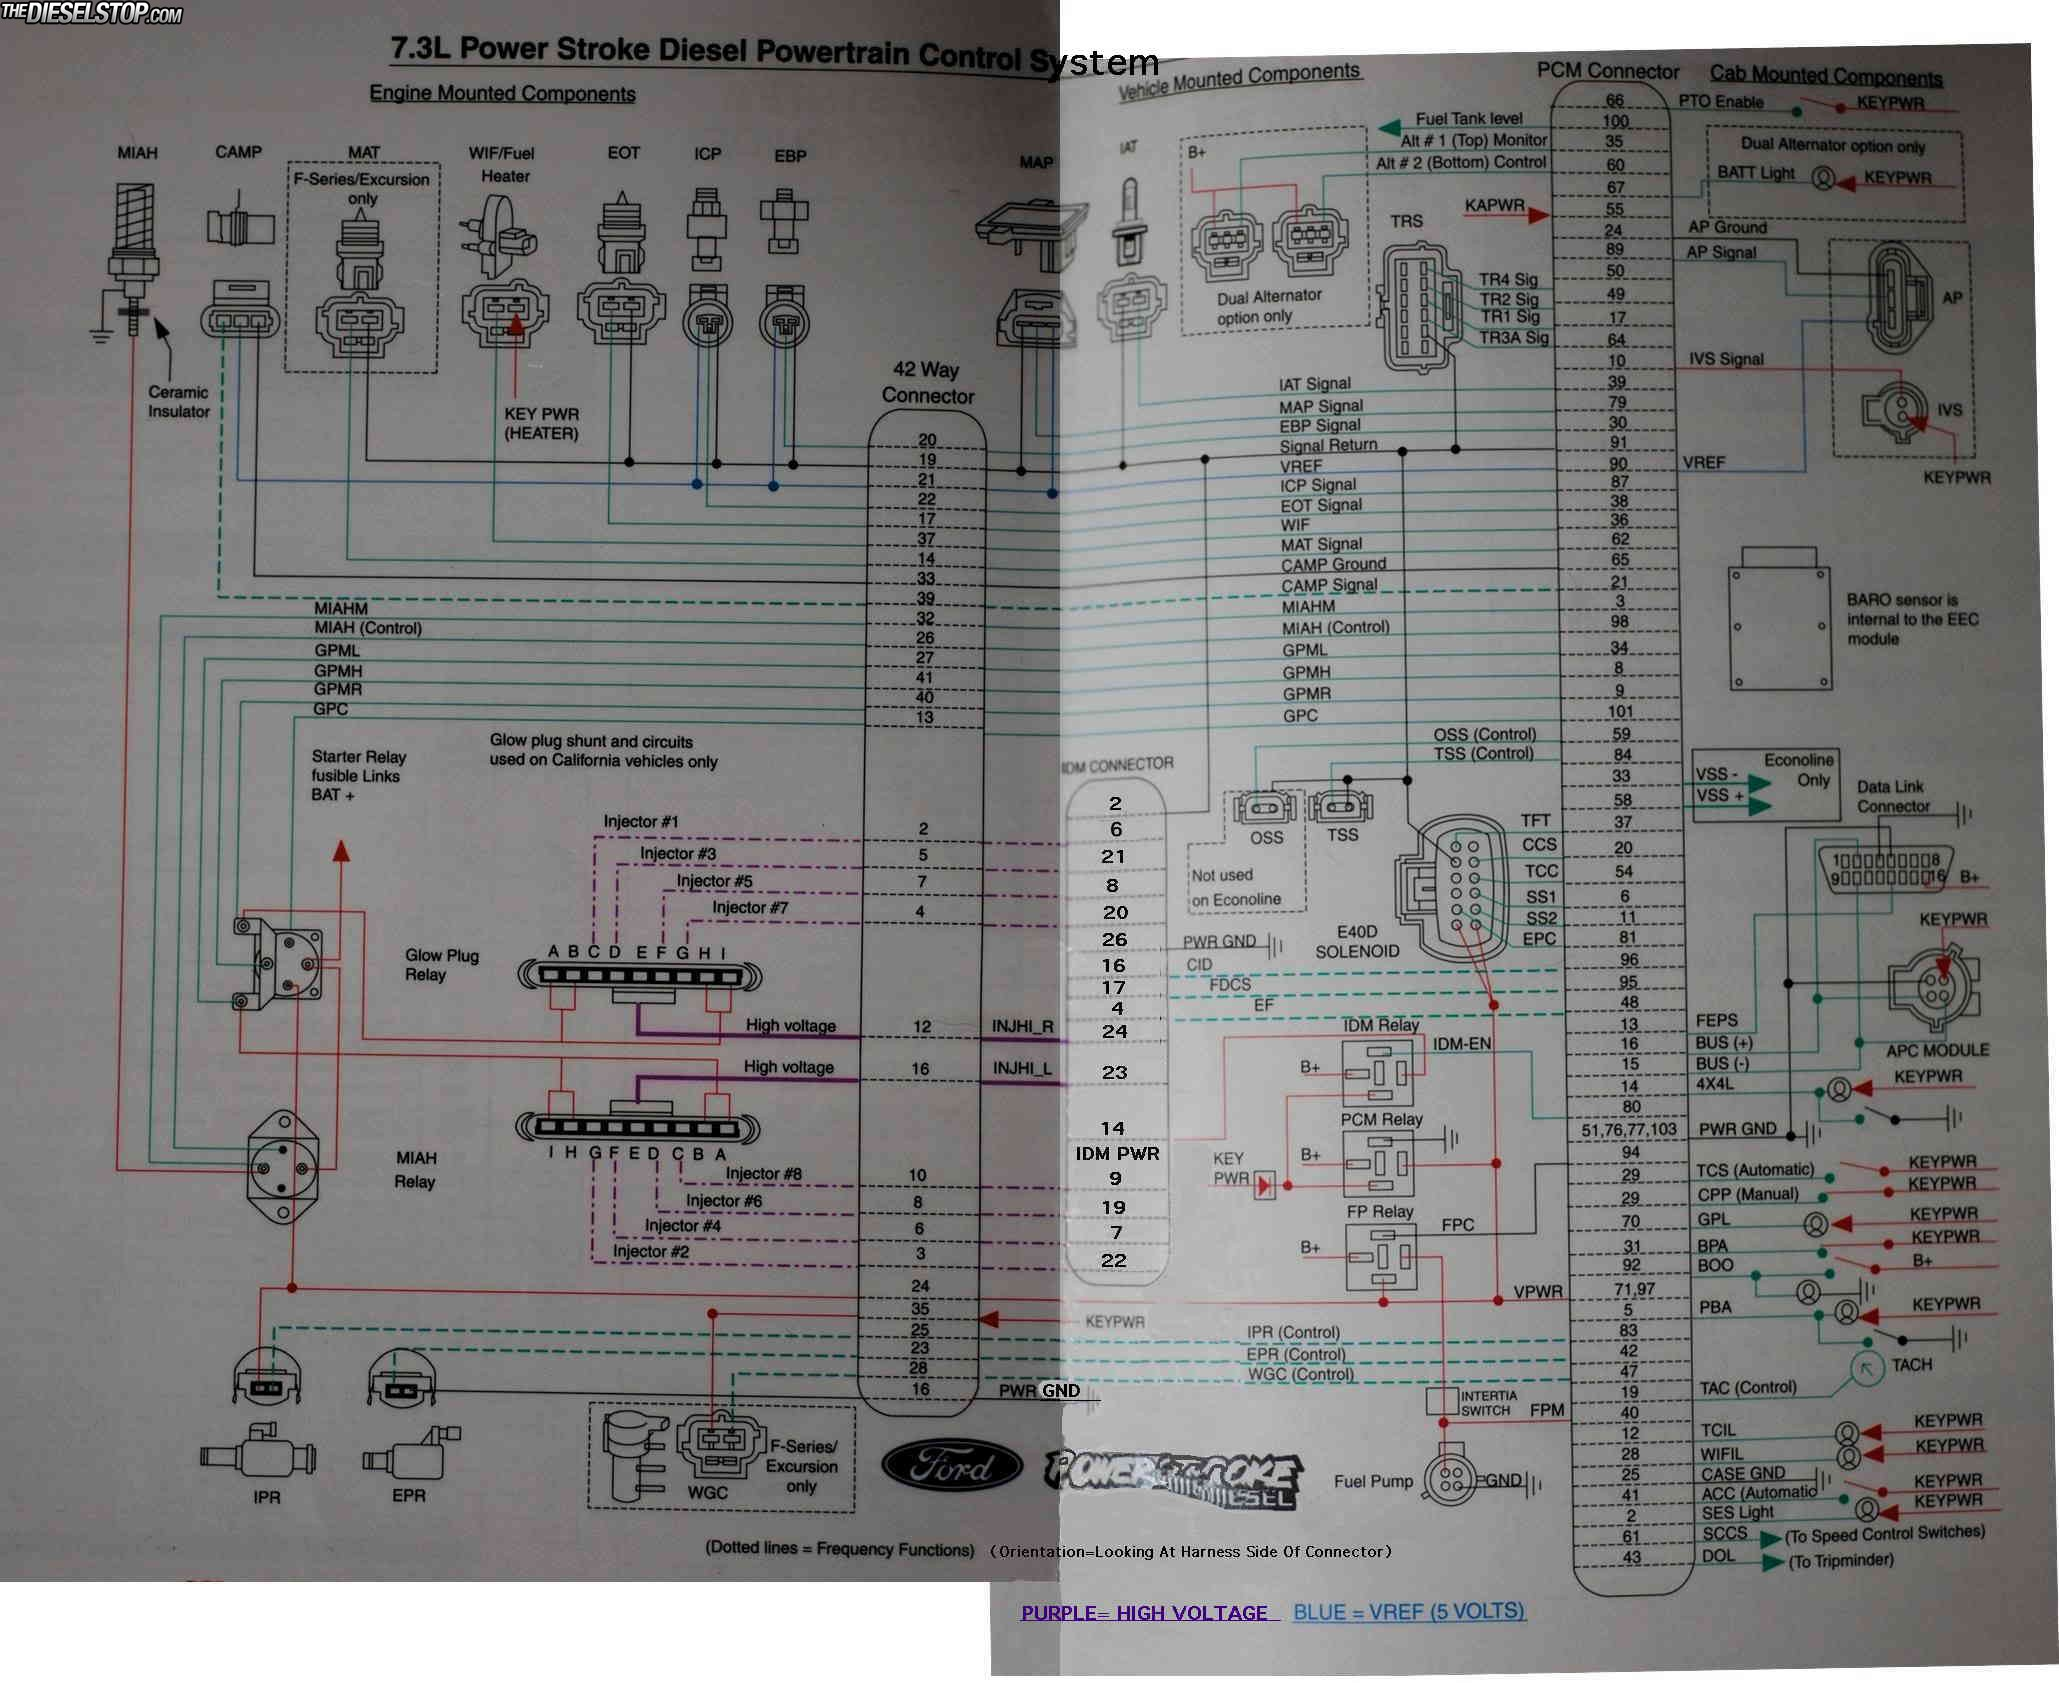 Ford E350 Wiring Diagram 2001 Ford E350 Blower Motor Wiring Diagram